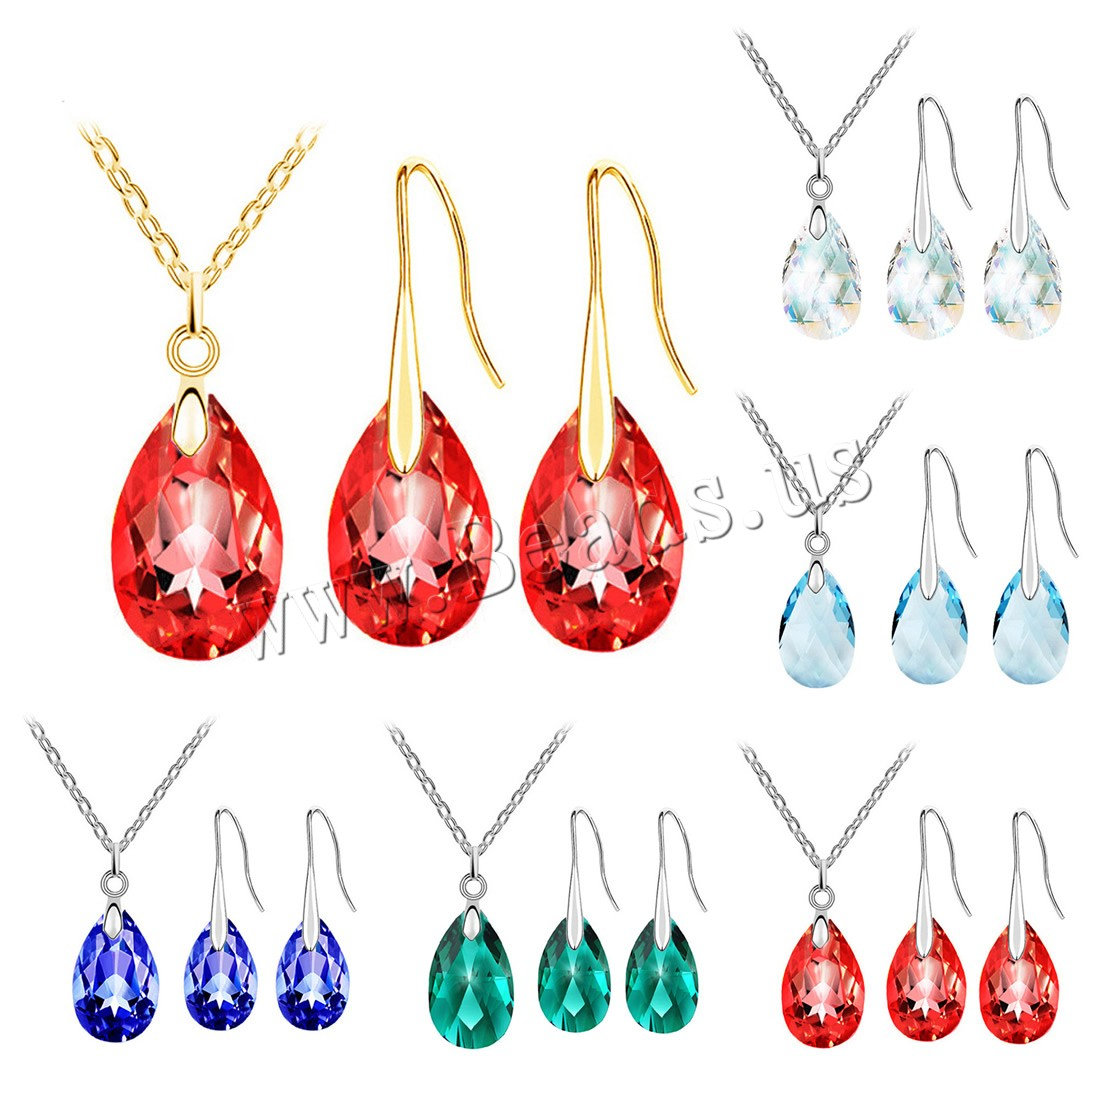 Buy Crystal Jewelry Sets earring & necklace Zinc Alloy iron chain & Crystal iron earring hook 5cm extender chain Teardrop plated oval chain & woman & faceted colors choice lead & cadmium free 20x9mm Length:Approx 15.5 Inch Sold Set